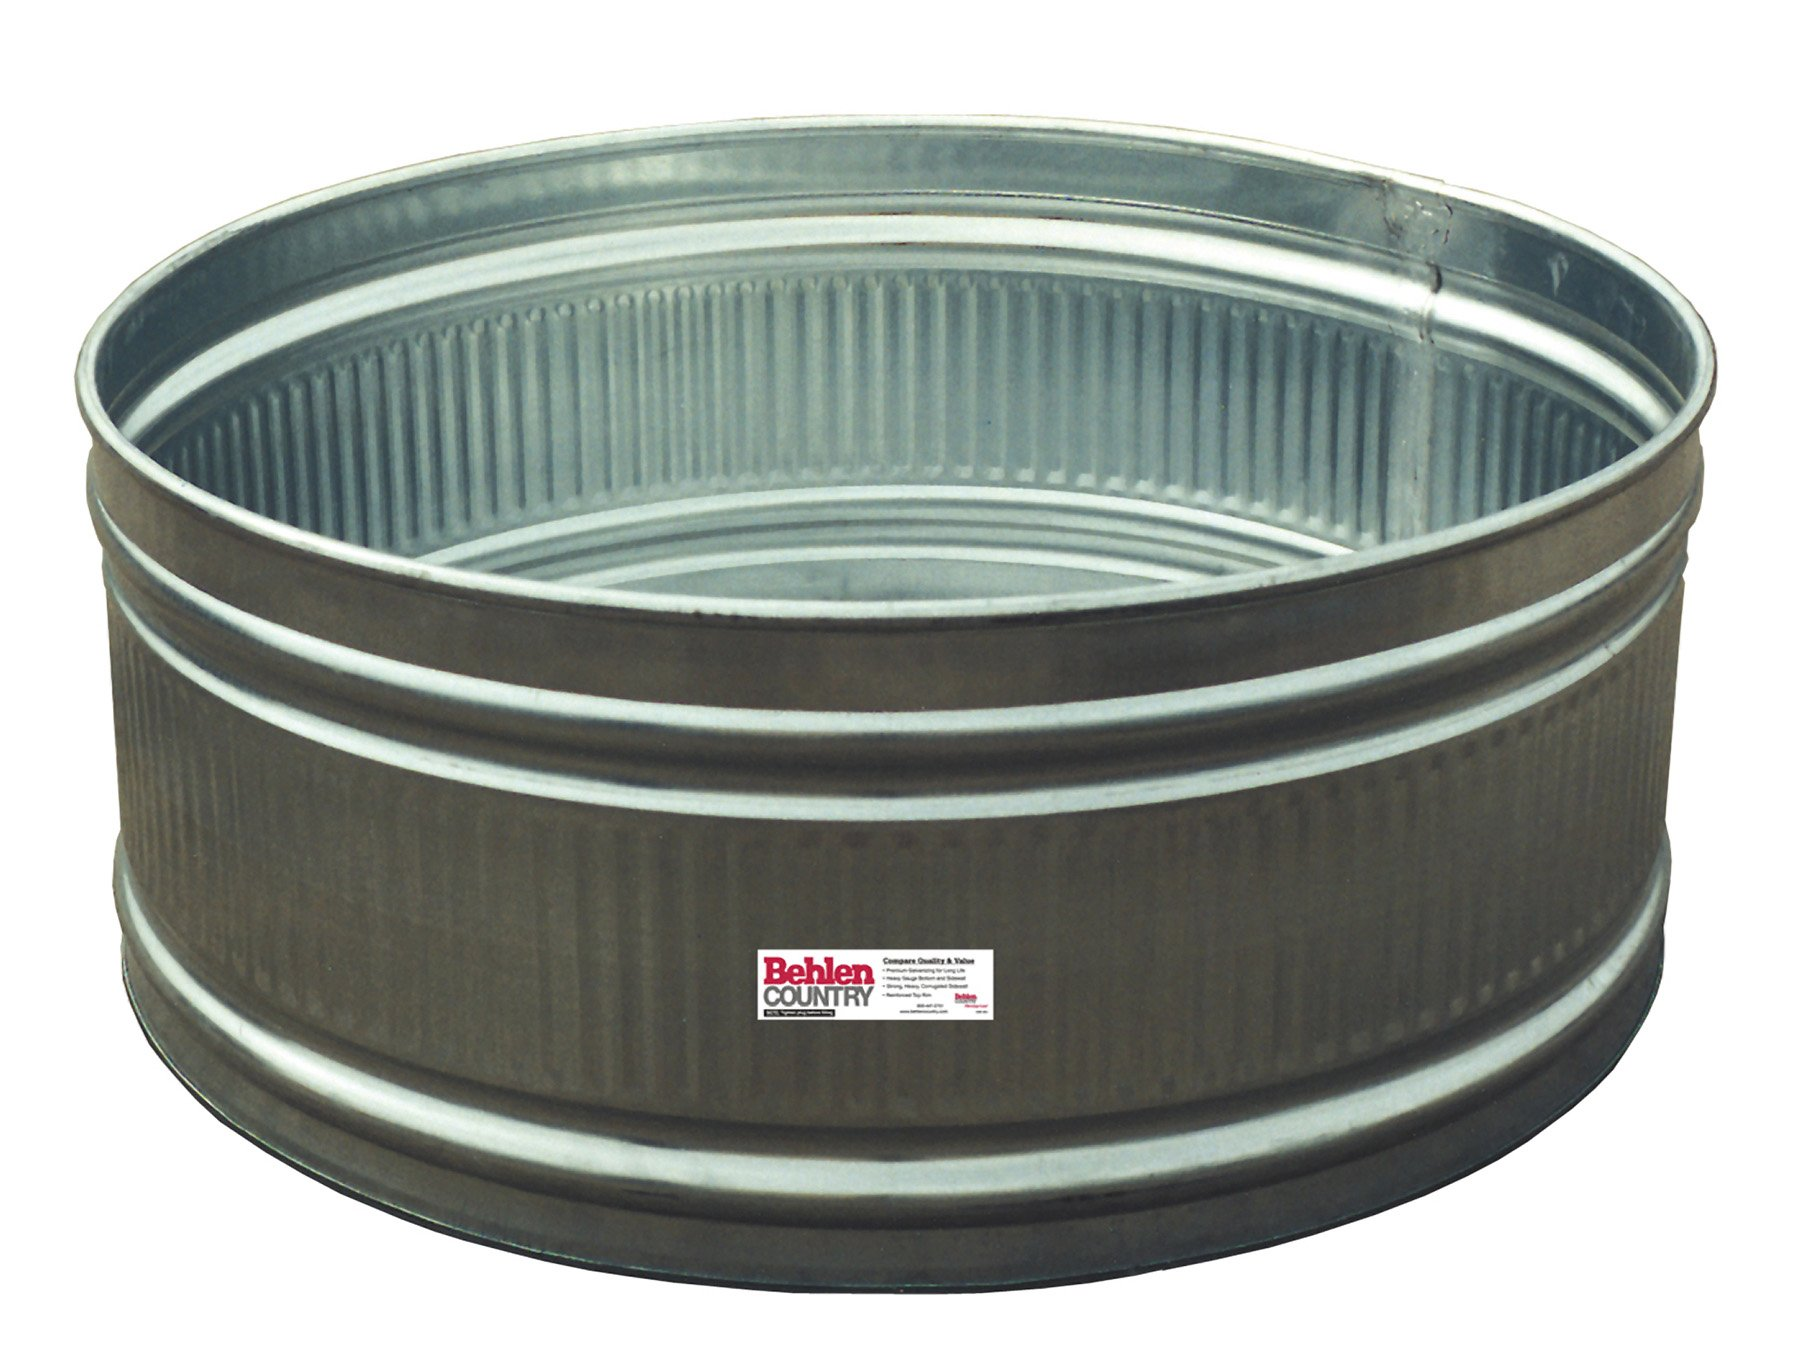 Behlen Country R42 165-Gallon Galvanized Round Tank by Behlen Country